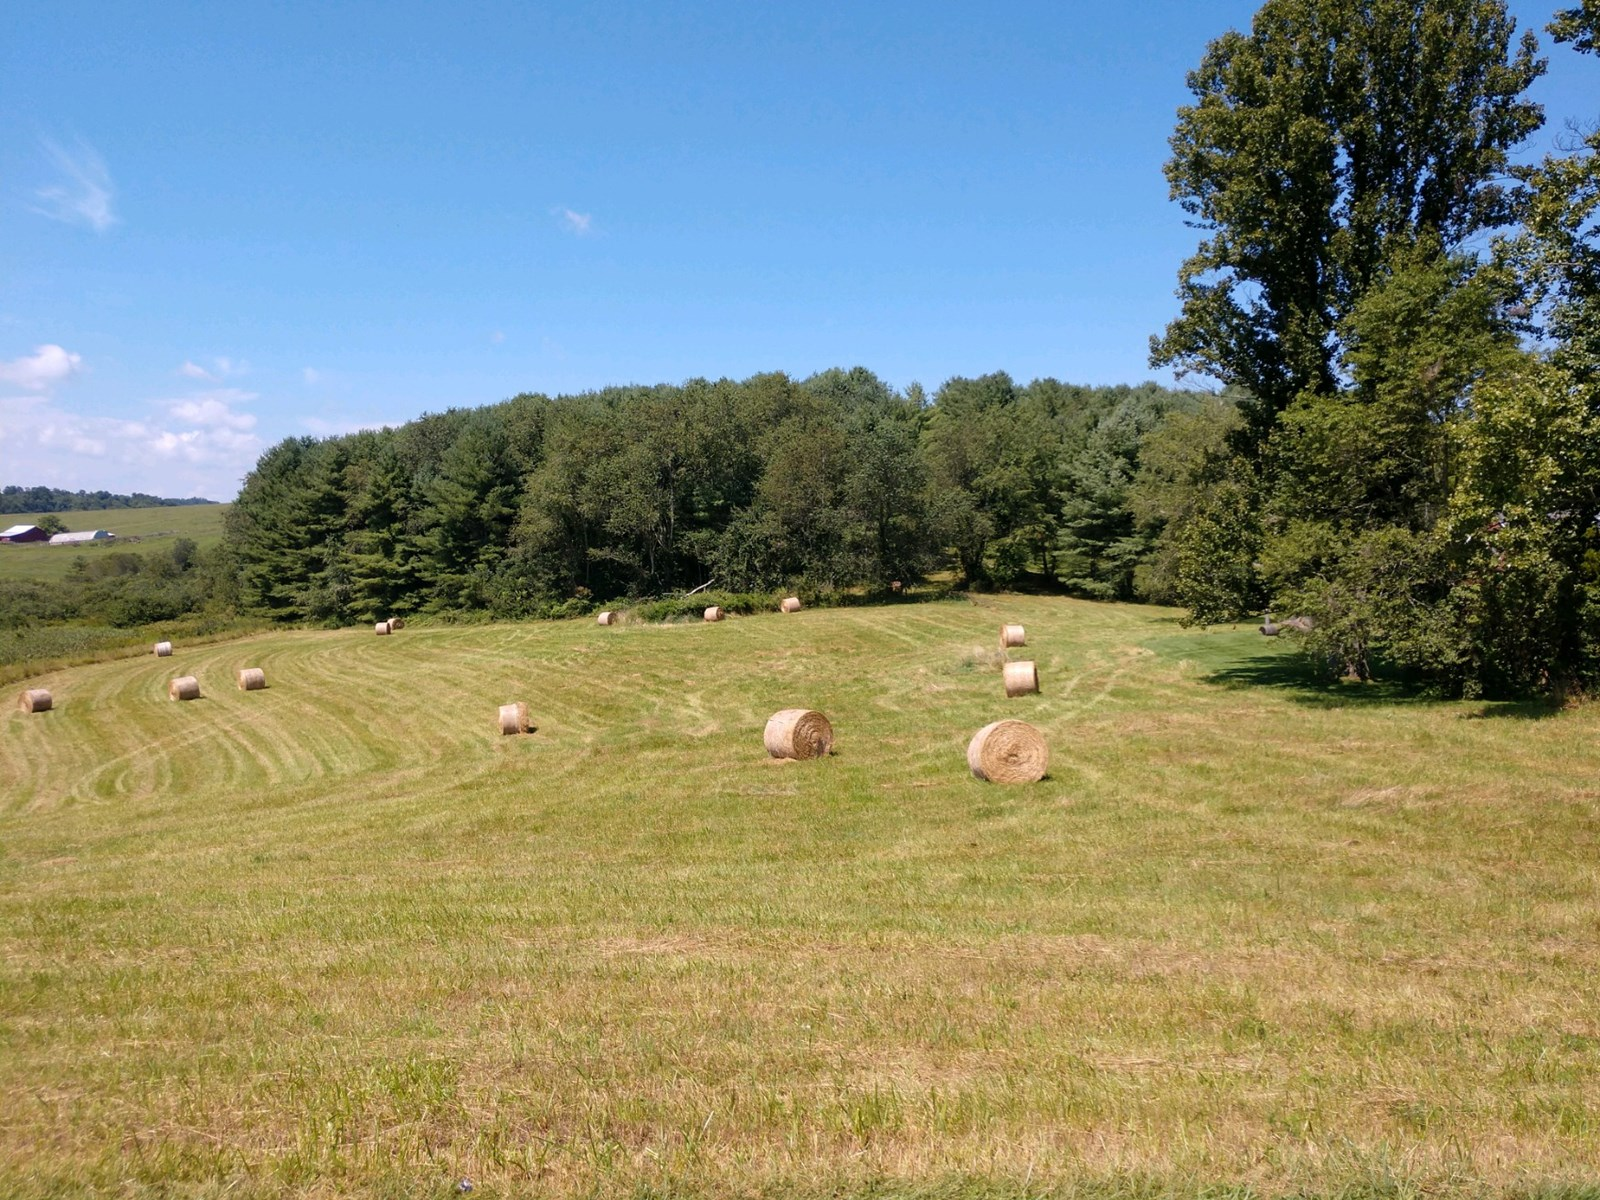 Pasture Land for Sale in Floyd VA at Auction